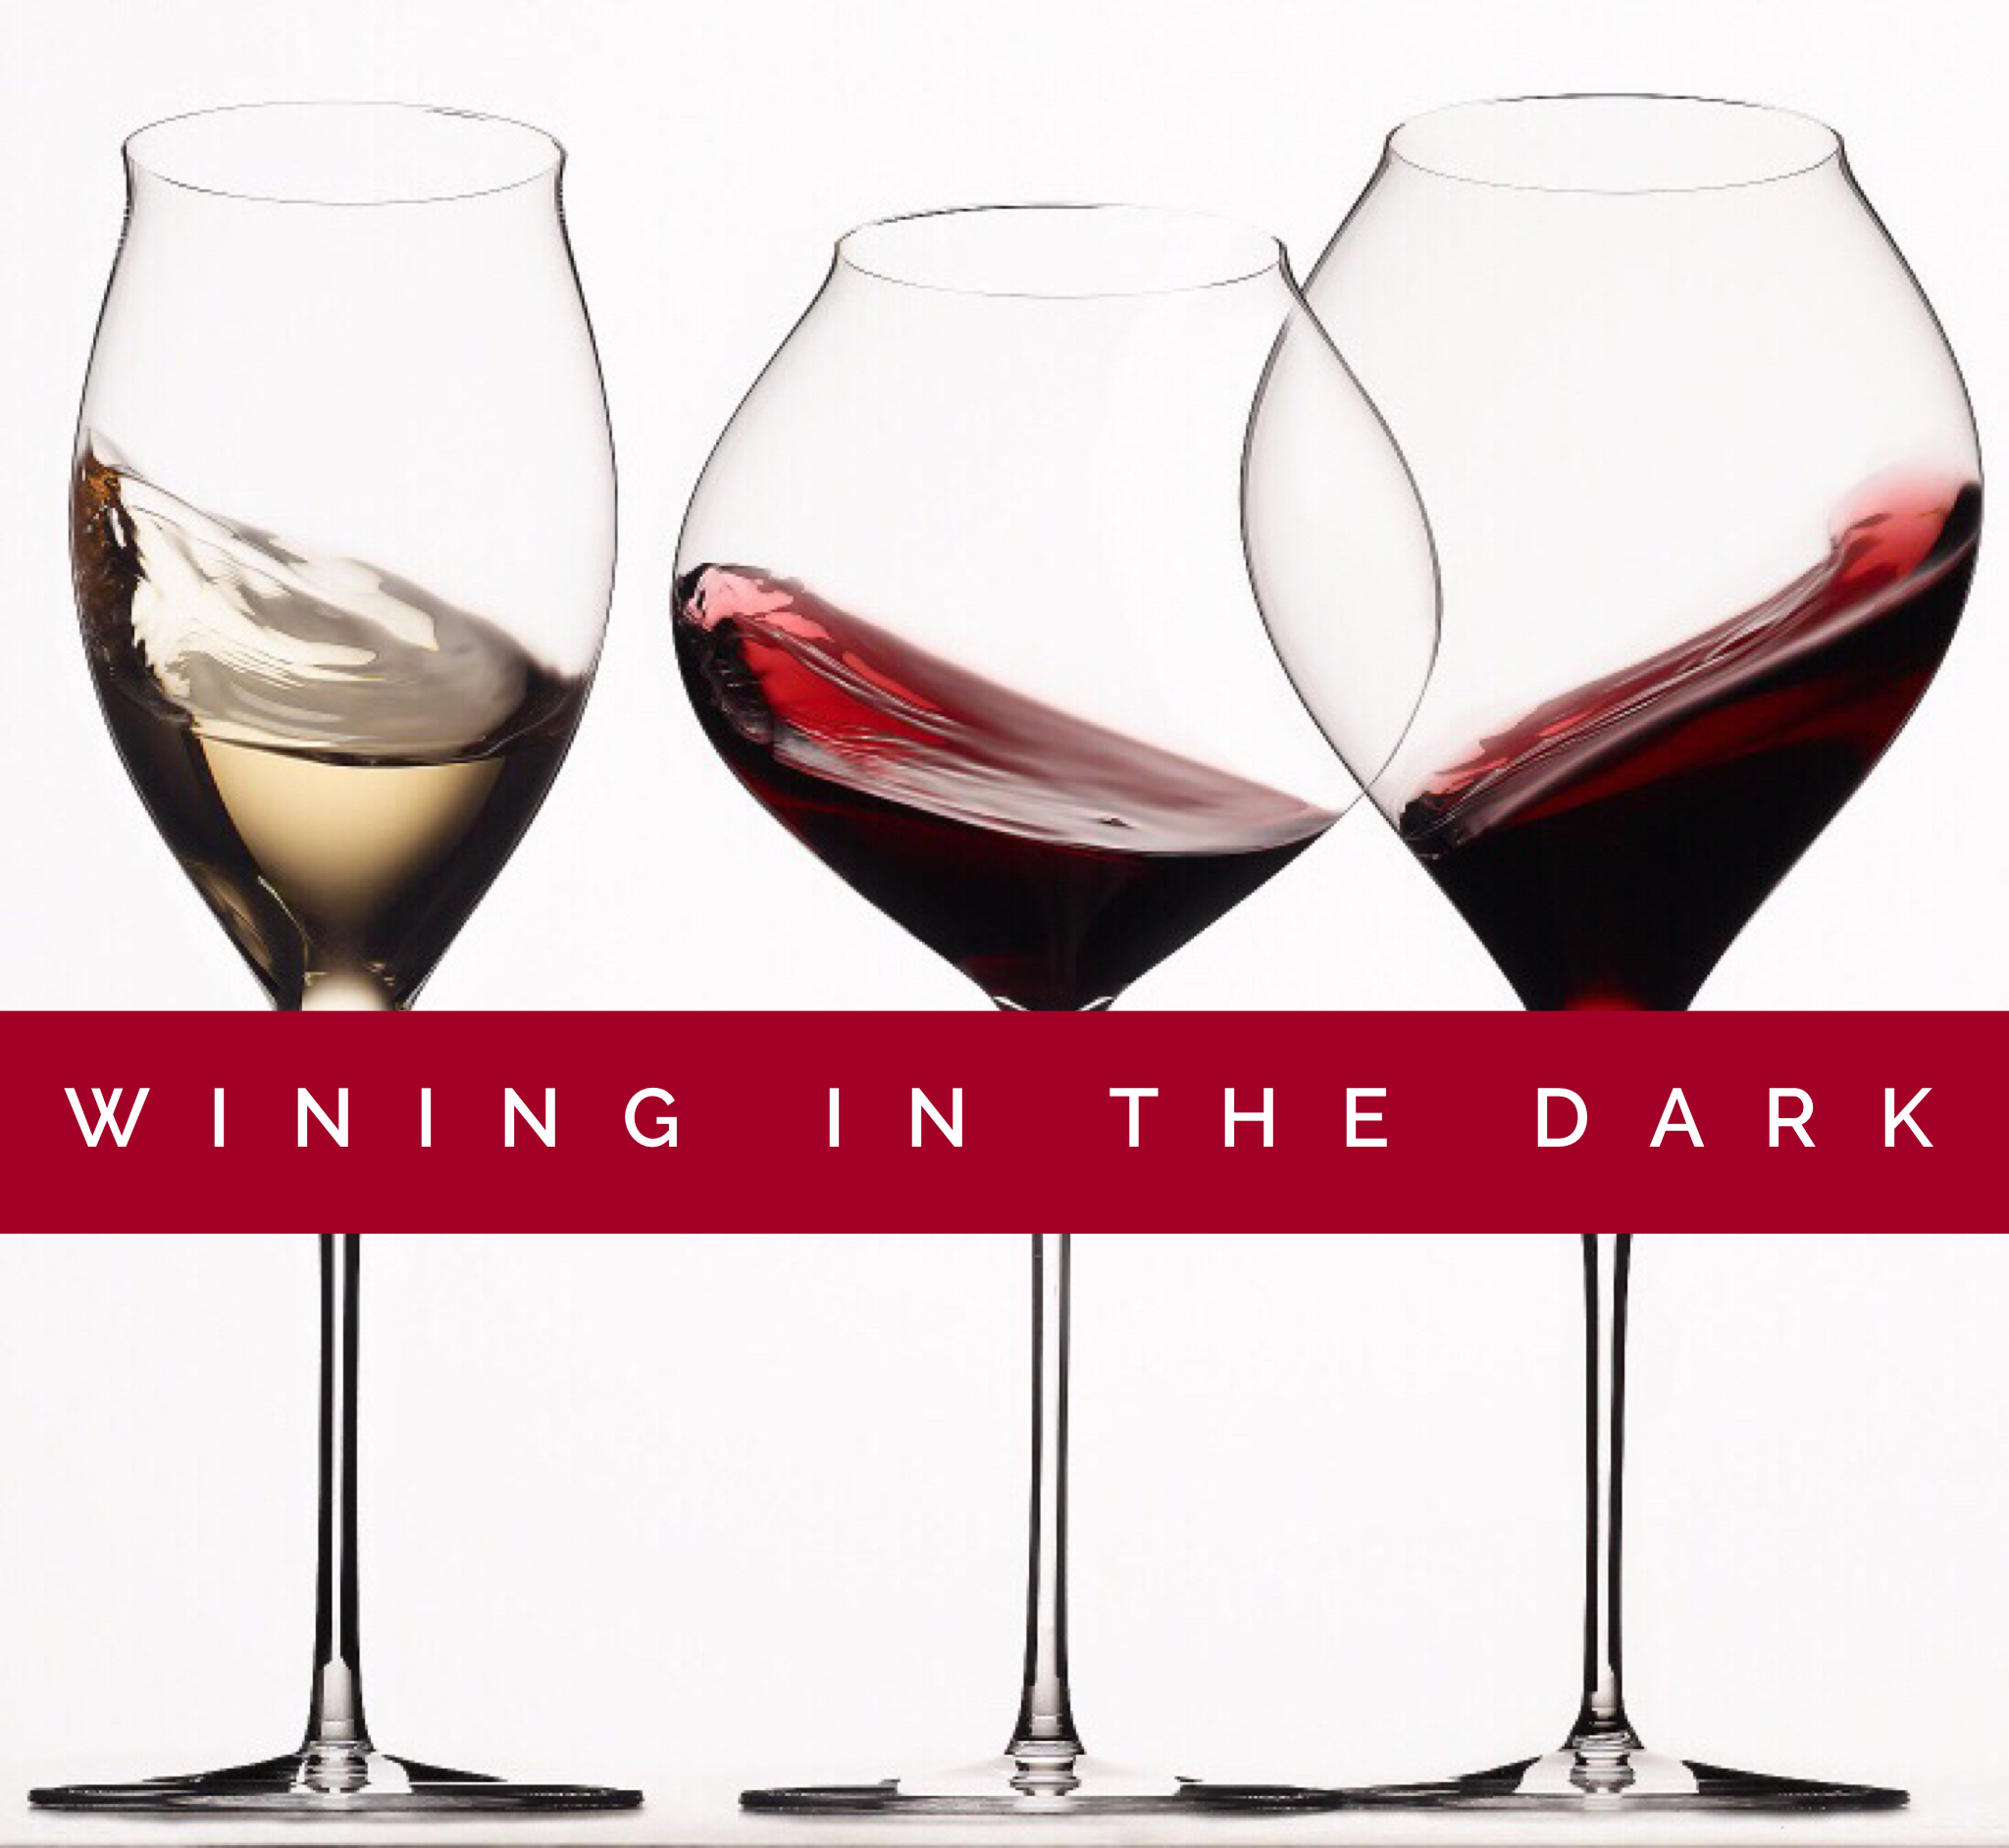 5th Annual Wining in the Dark